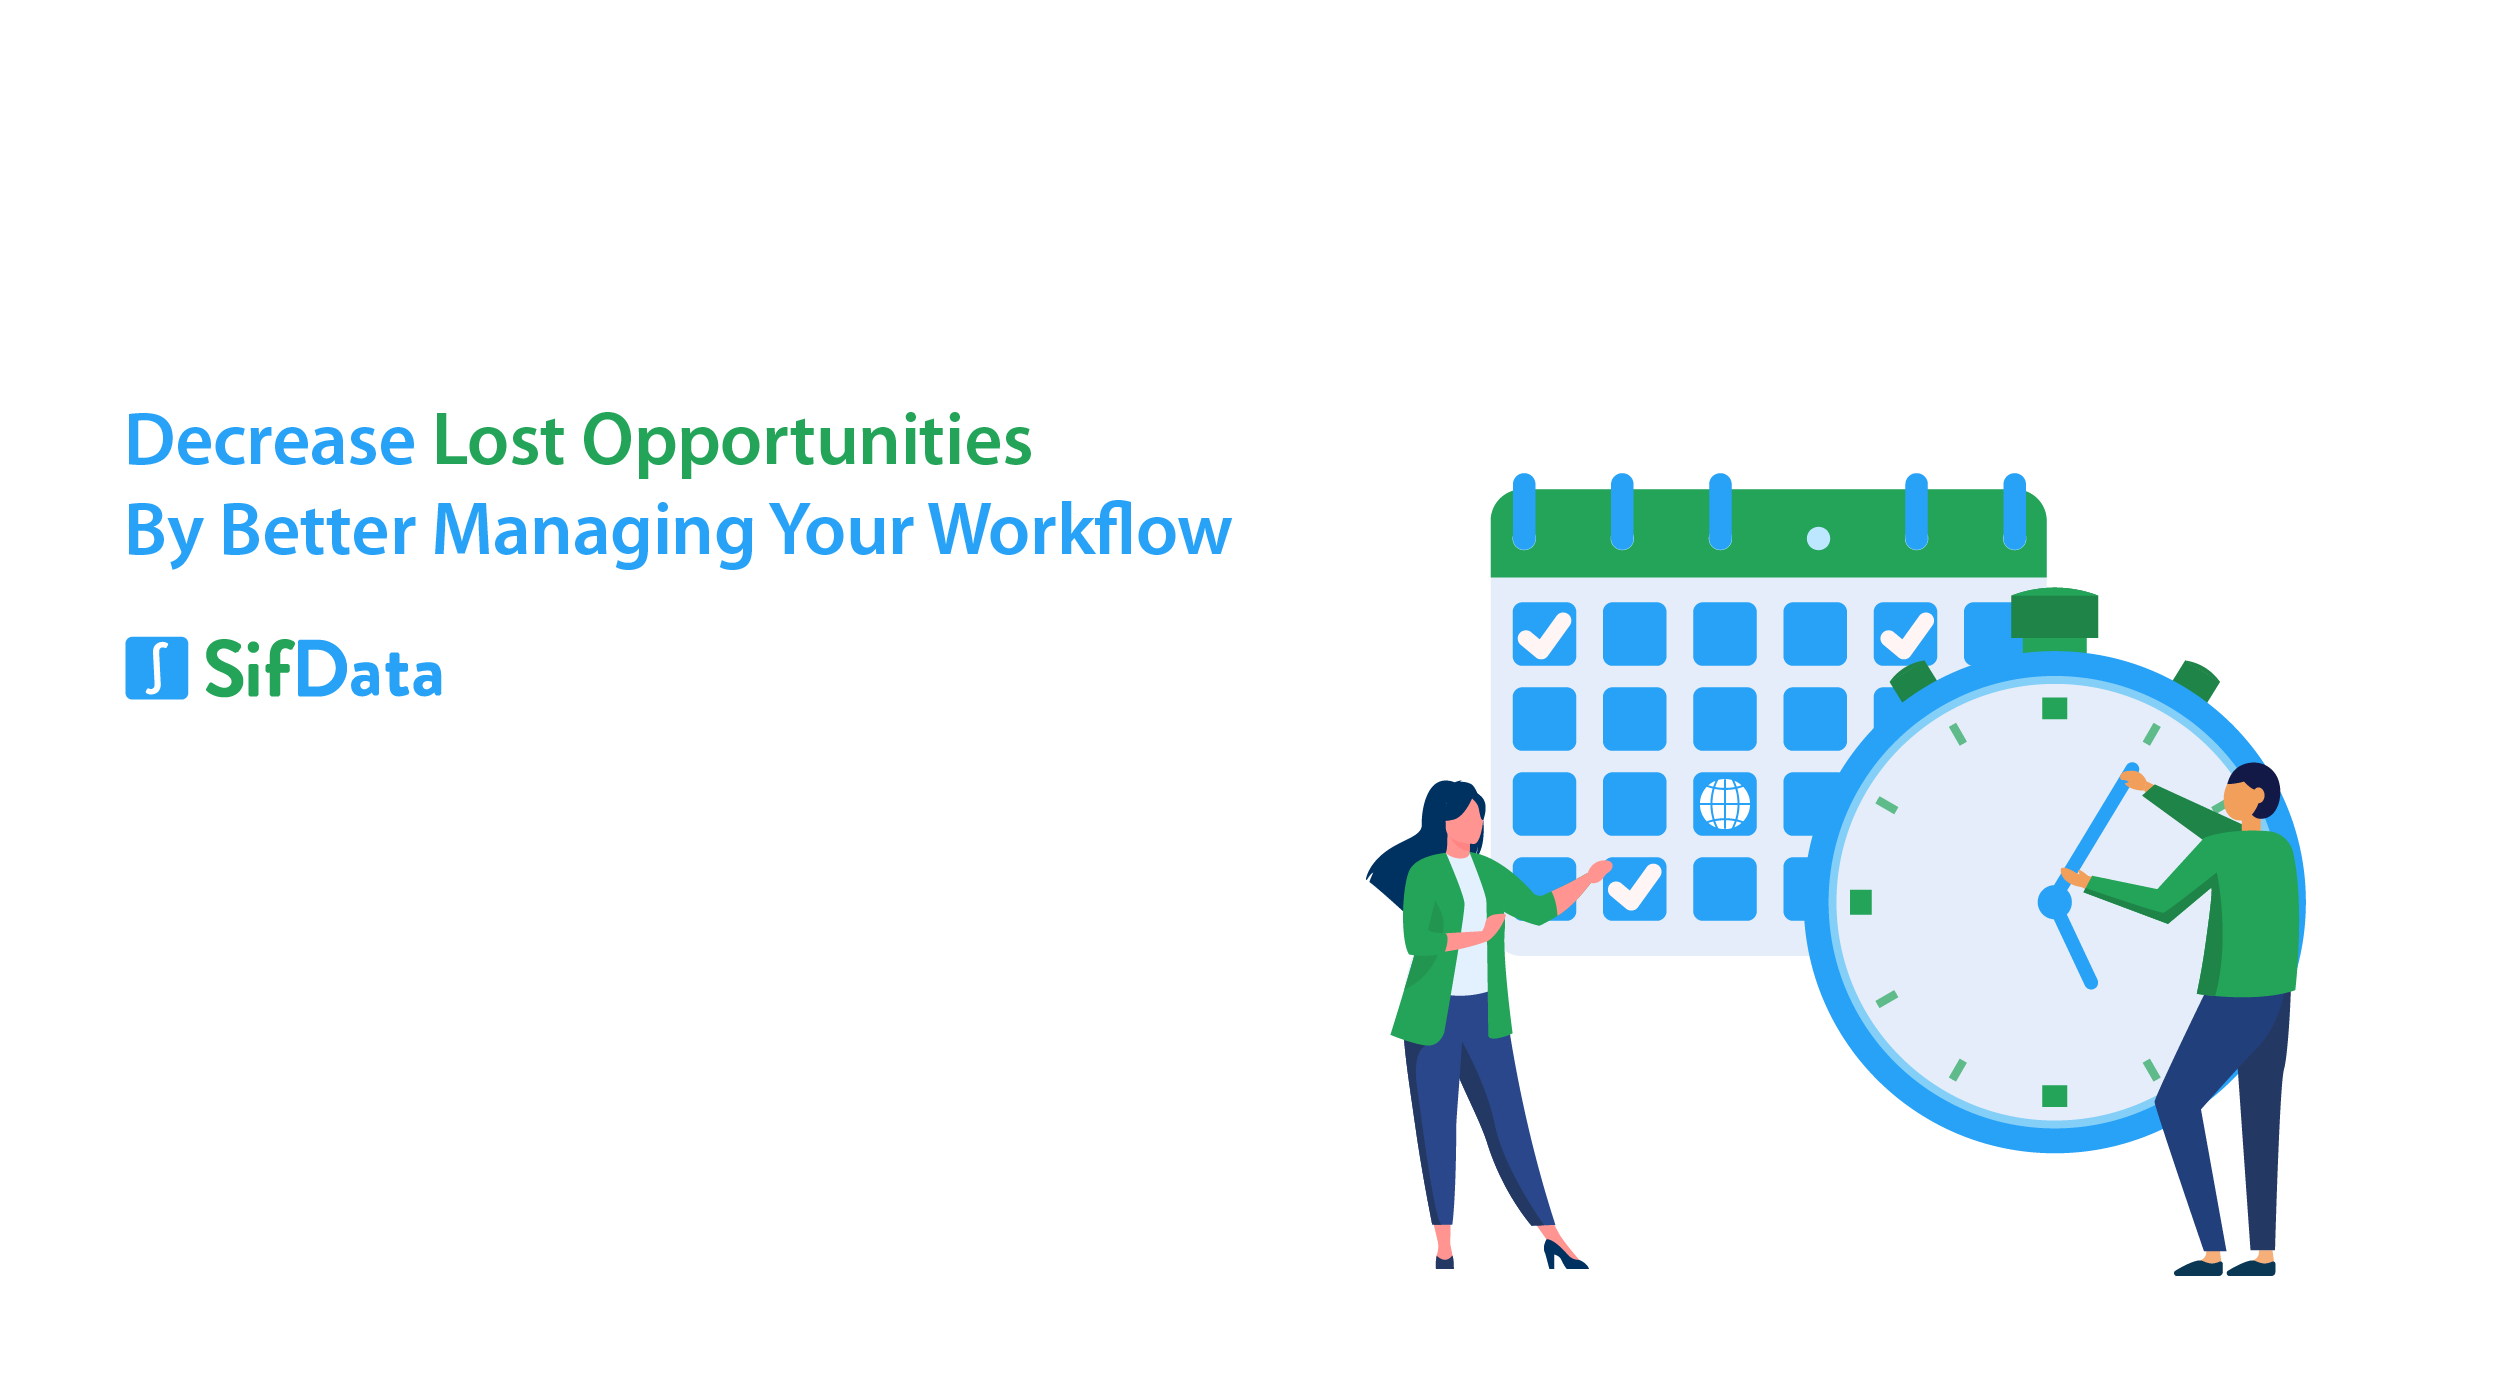 DECREASE LOST OPPORTUNITIES BY BETTER MANAGING YOUR WORKFLOW